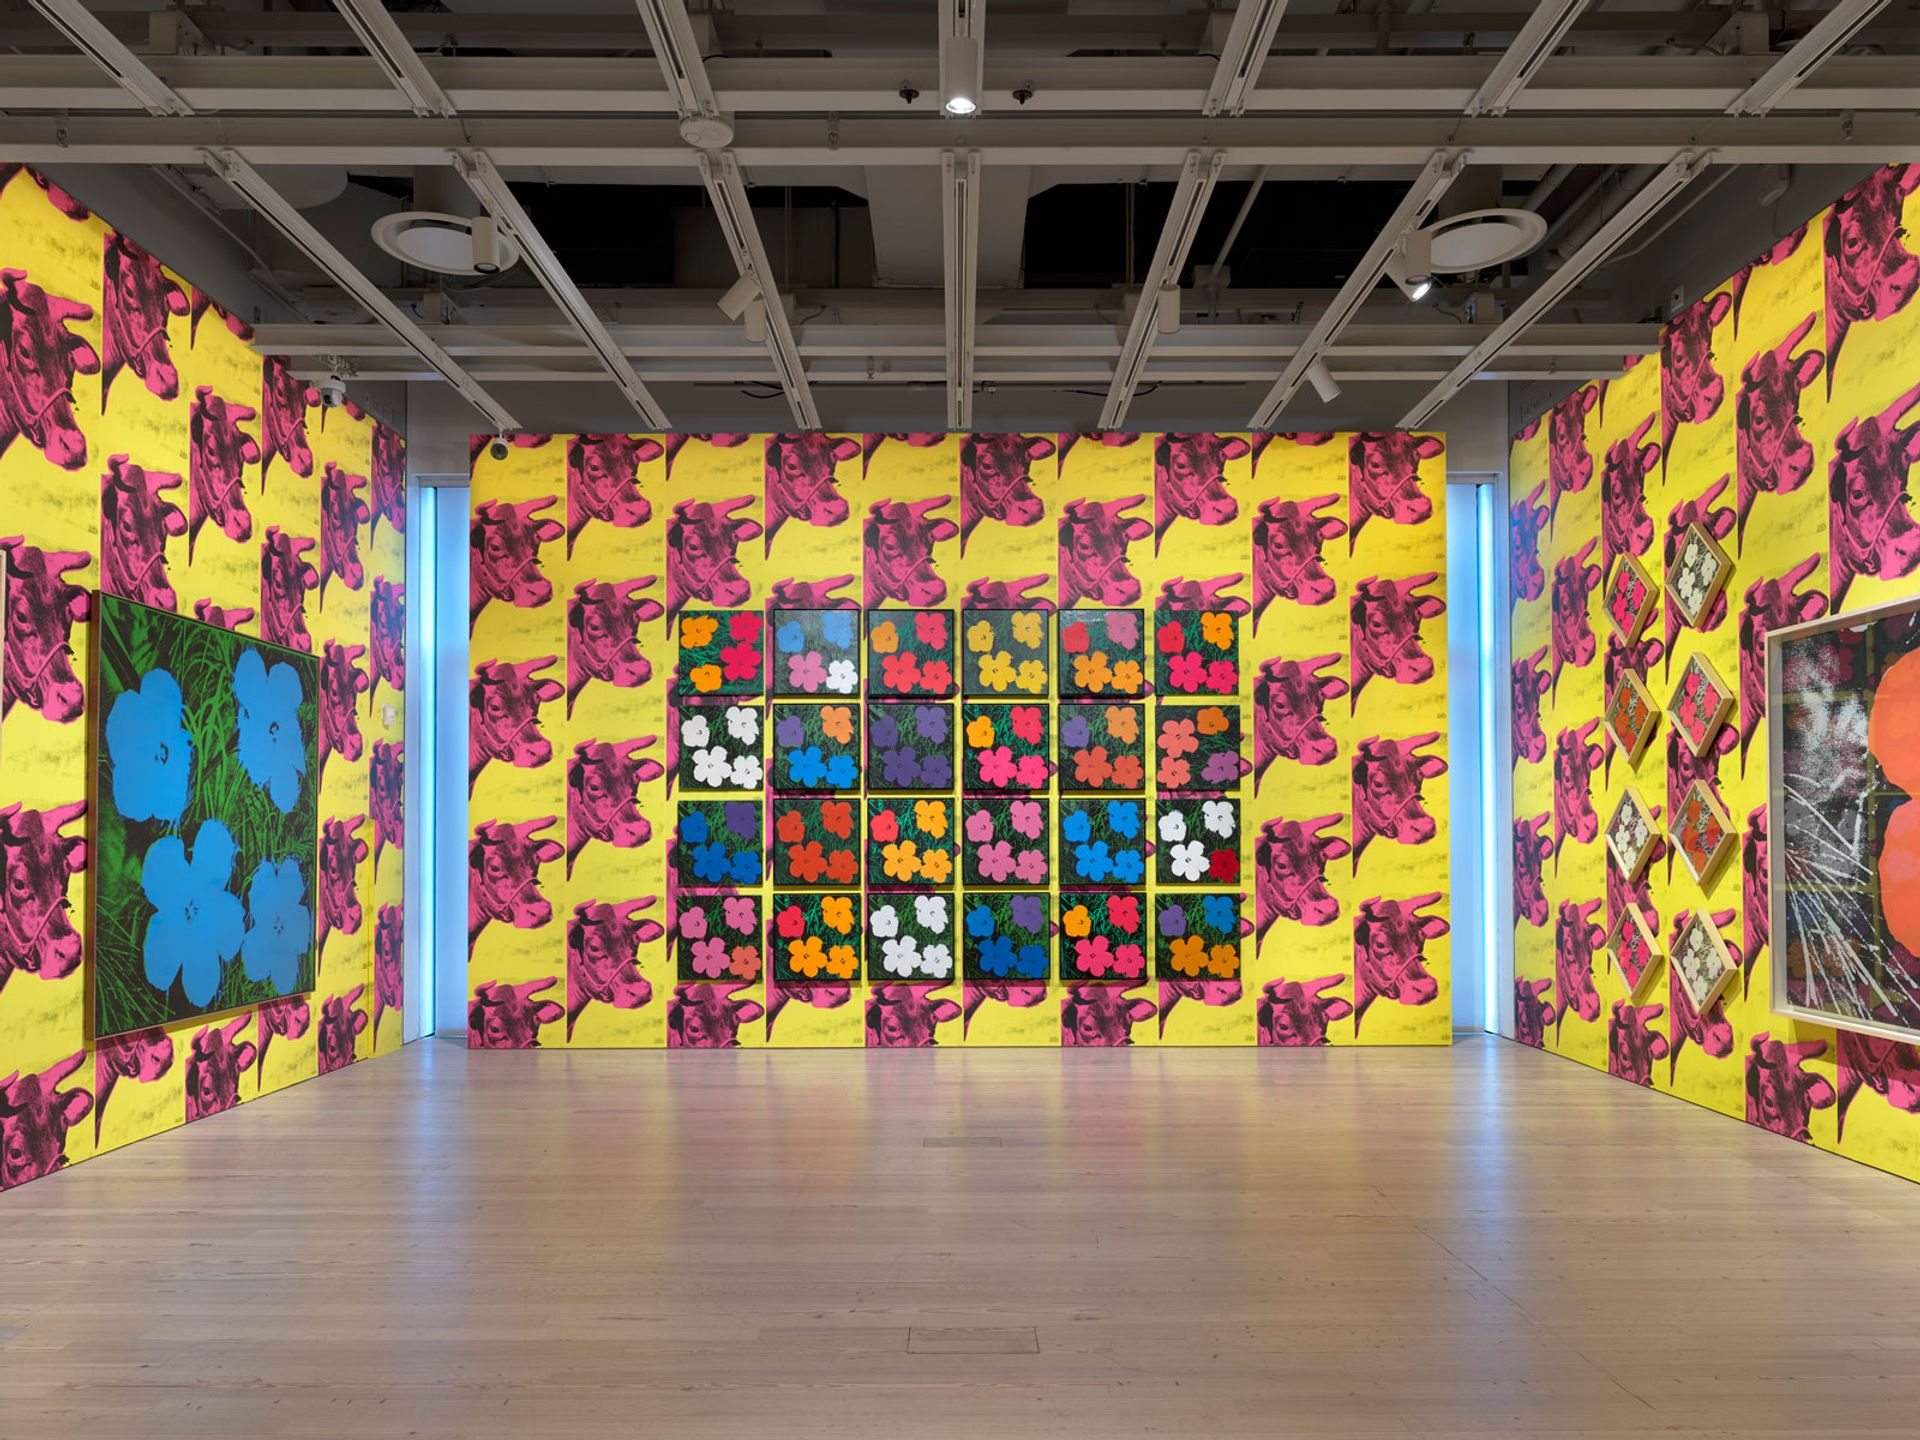 Installation view of Andy Warhol – From A to B and Back Again Photo: Ron Amstutz. © 2018 The Andy Warhol Foundation for the Visual Arts, Inc/Licensed by Artists Rights Society (ARS), New York